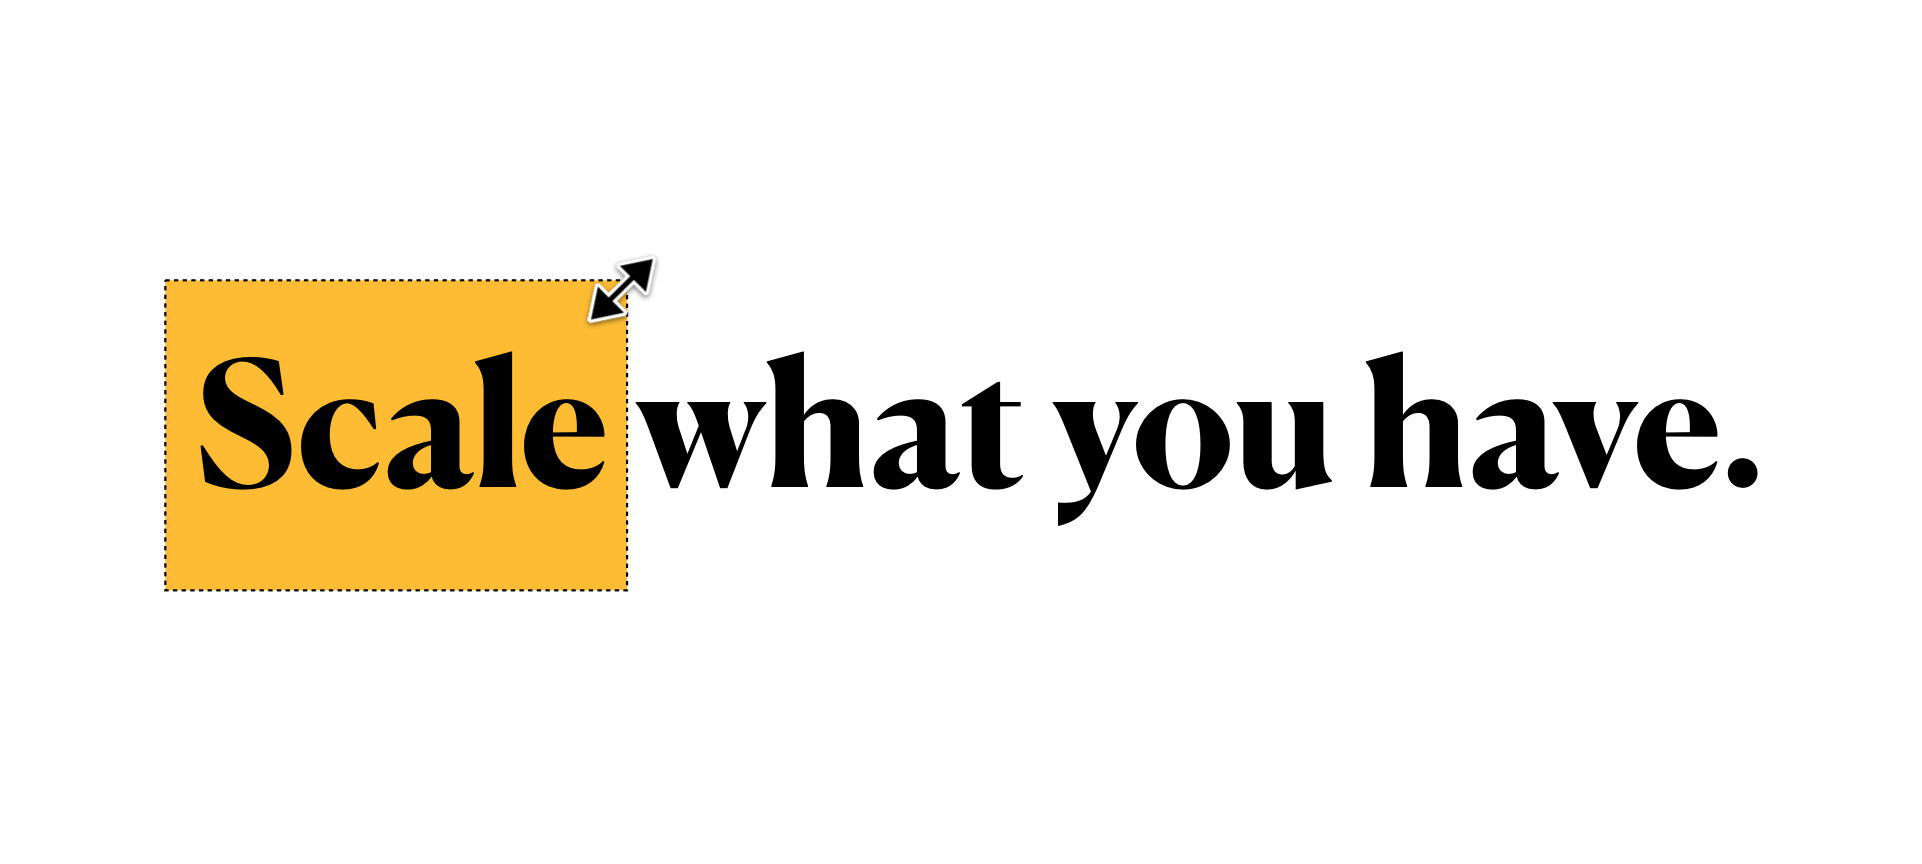 Stylized 'Scale what you have' design